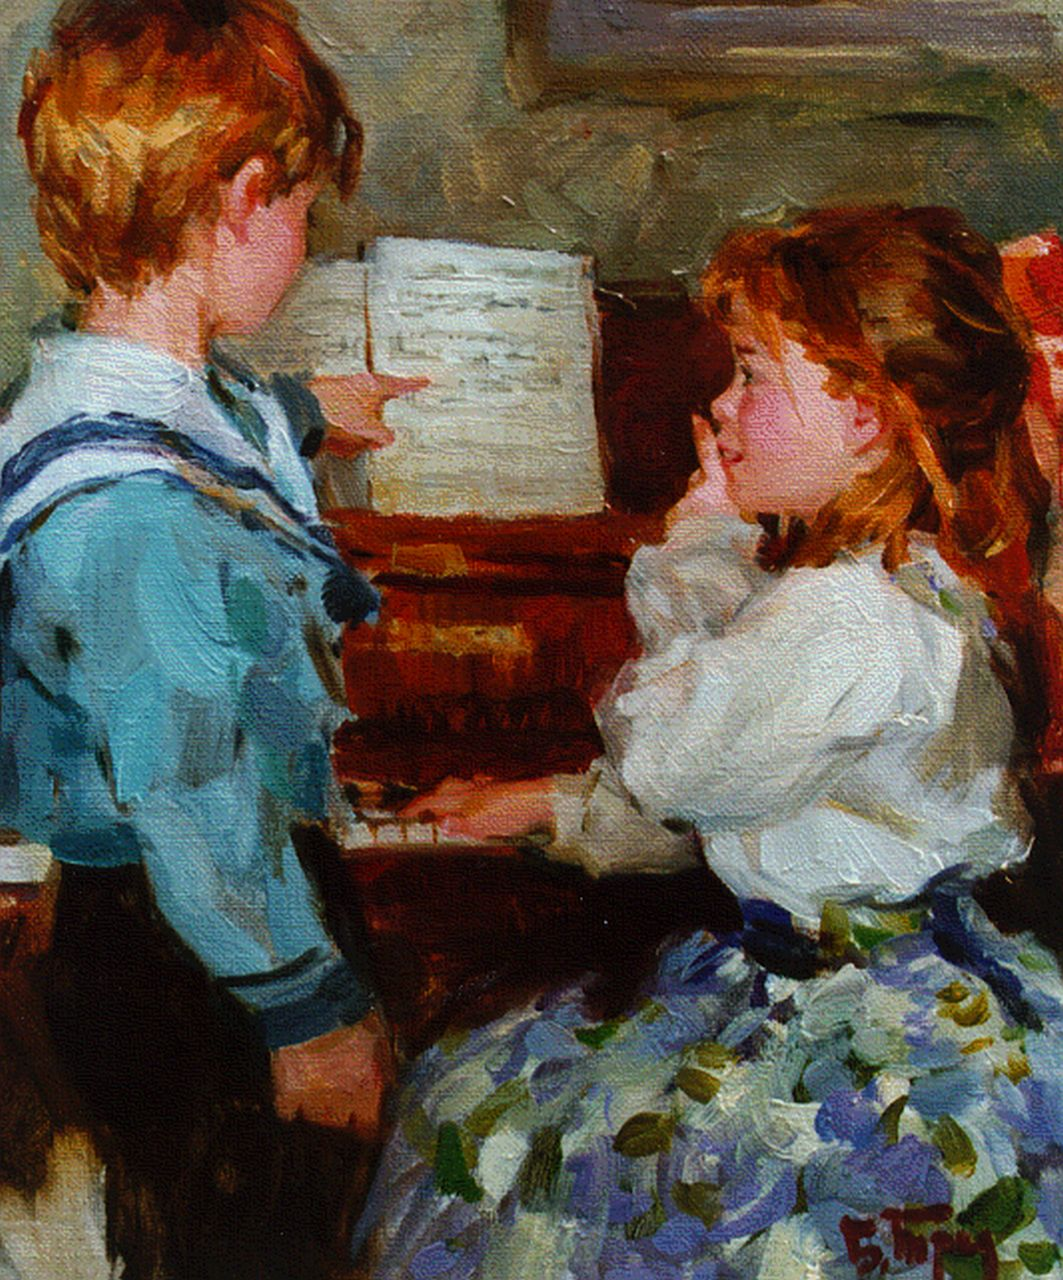 Boris Trofimenko | Playing the piano, oil on canvas, 34.8 x 26.8 cm, signed l.r.